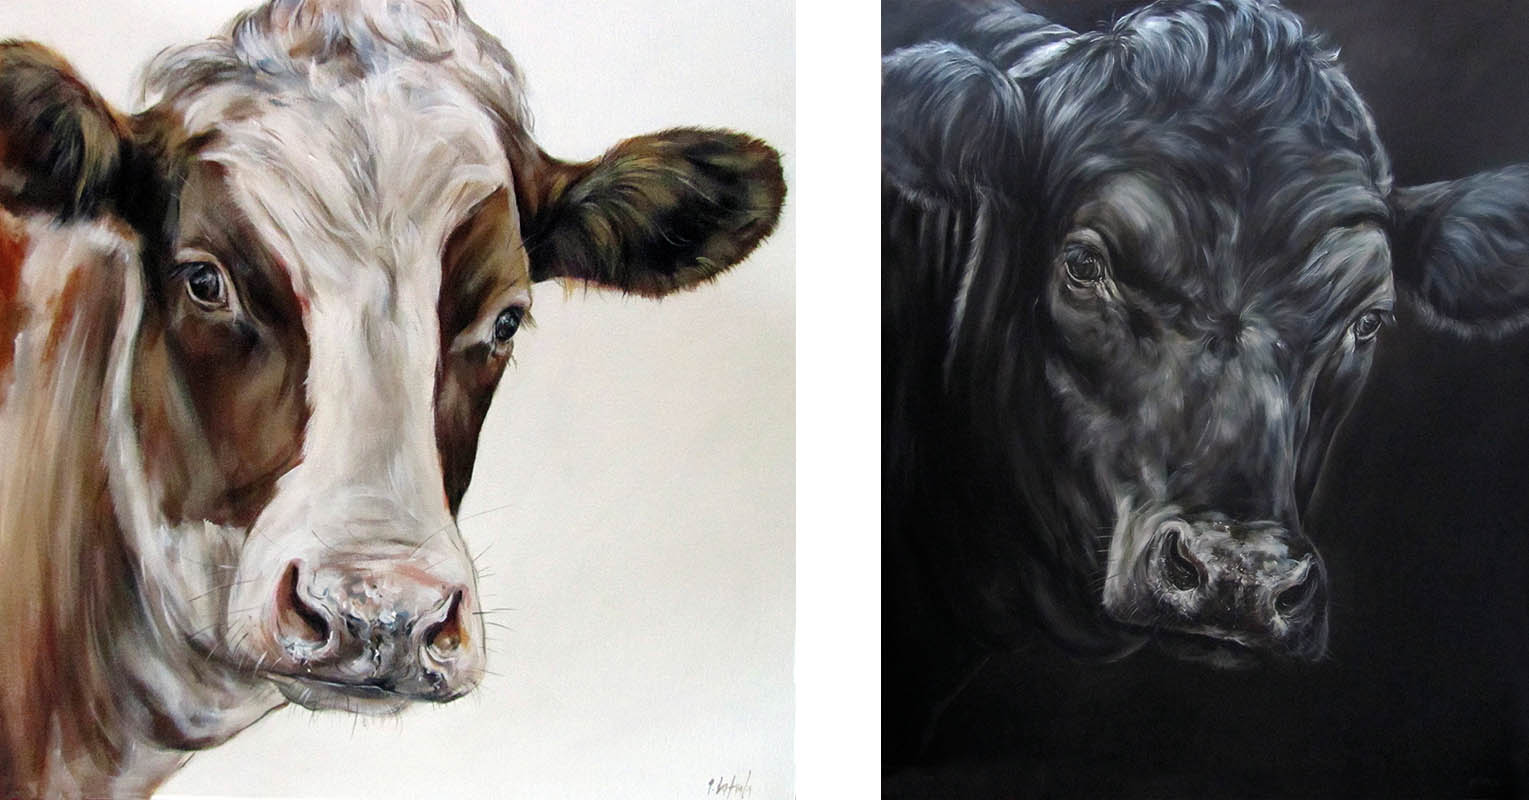 Dreamy (left) and Tupelo Honey (right) by Päivi Latvala, Artist of the Month: Finland, Scan Magazine September 2019